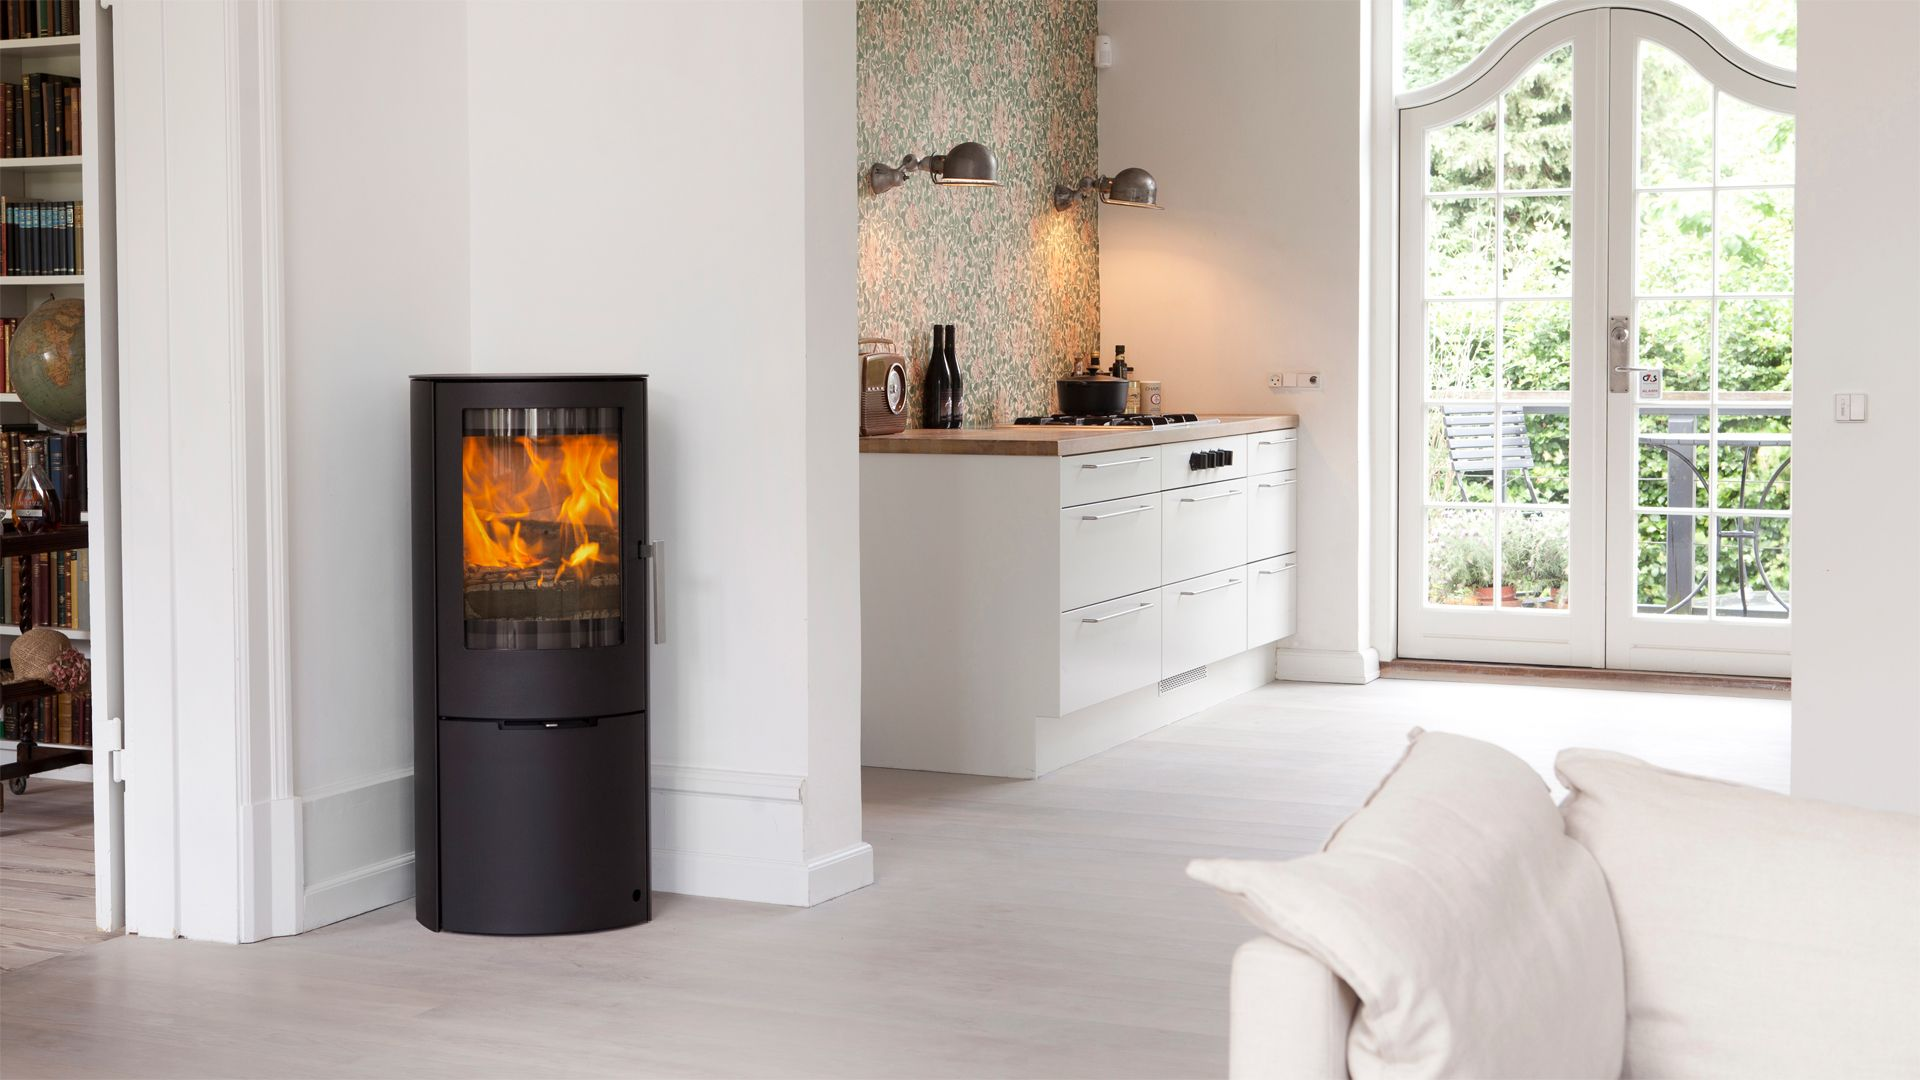 The Mido is a tall and slim stove that has a large curved glass ...